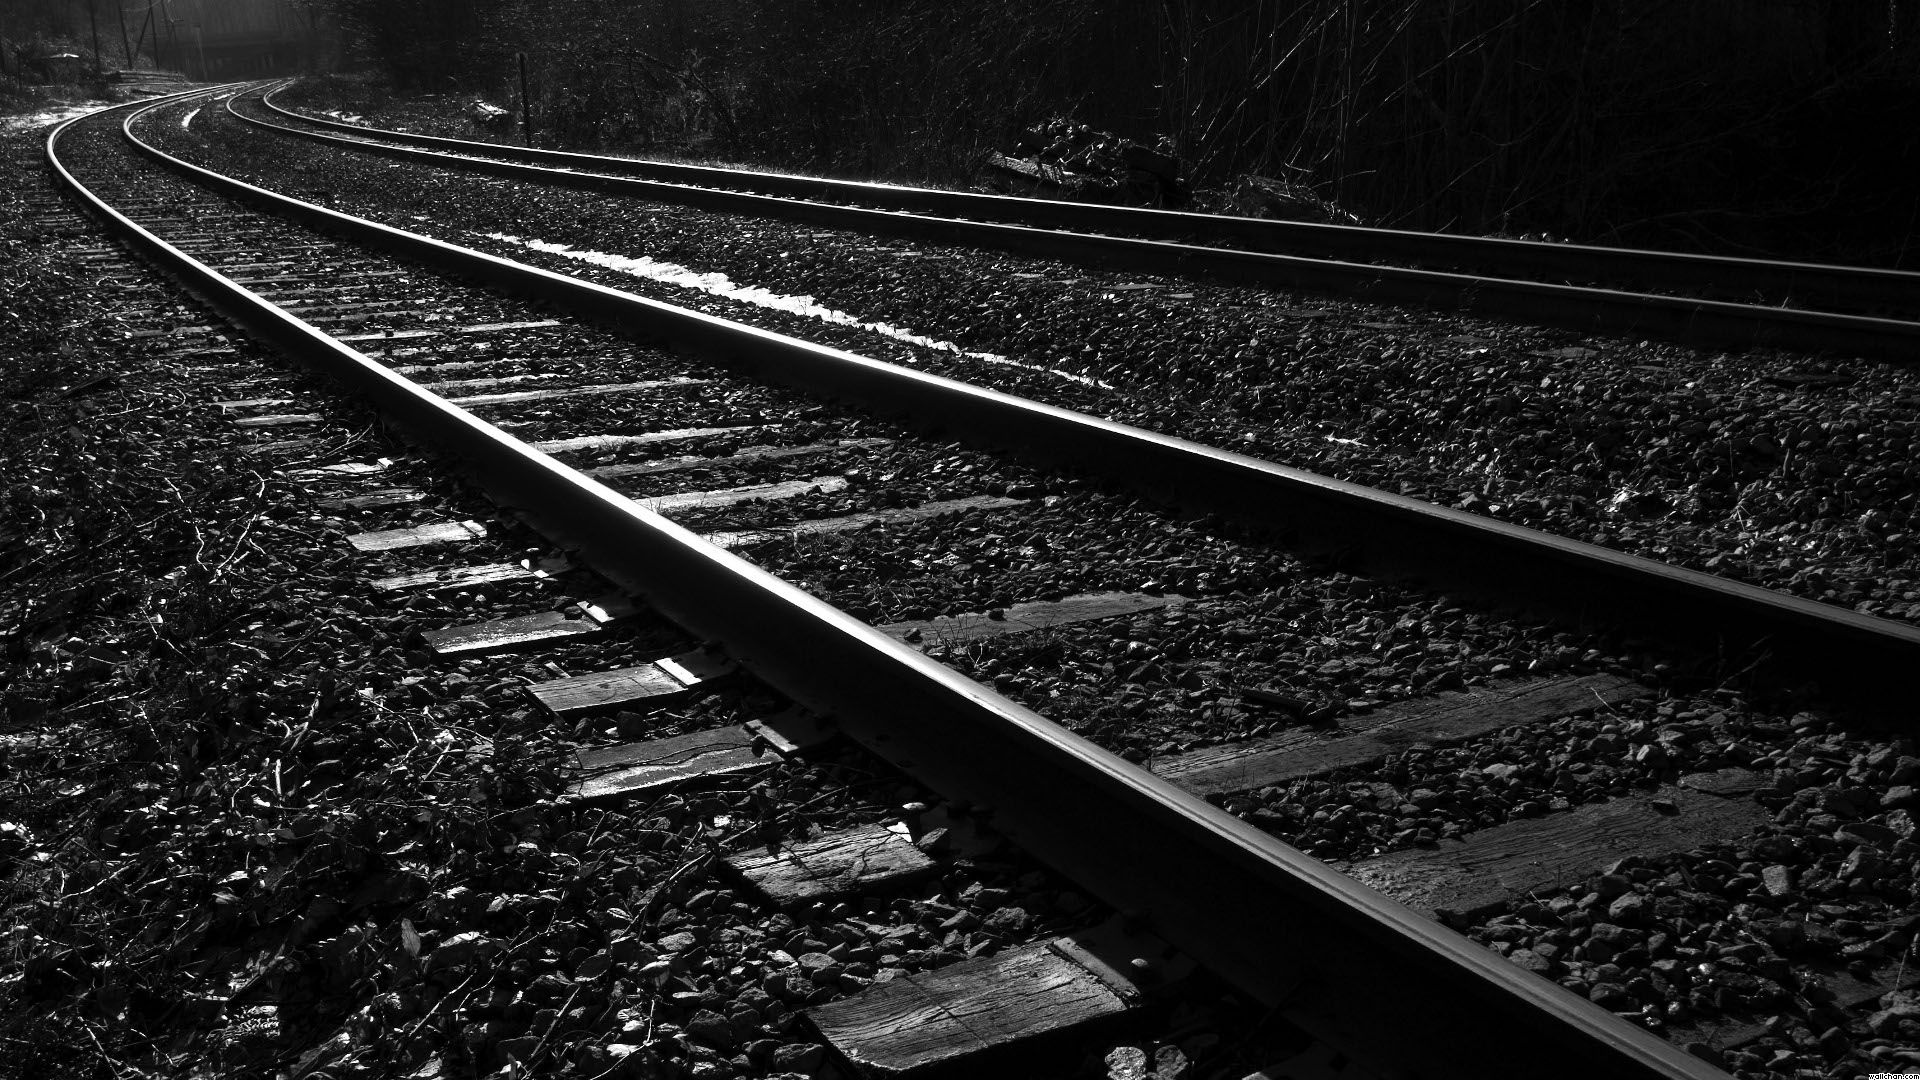 Train Track Wallpapers 37960 1920x1080 px ~ HDWallSource.com